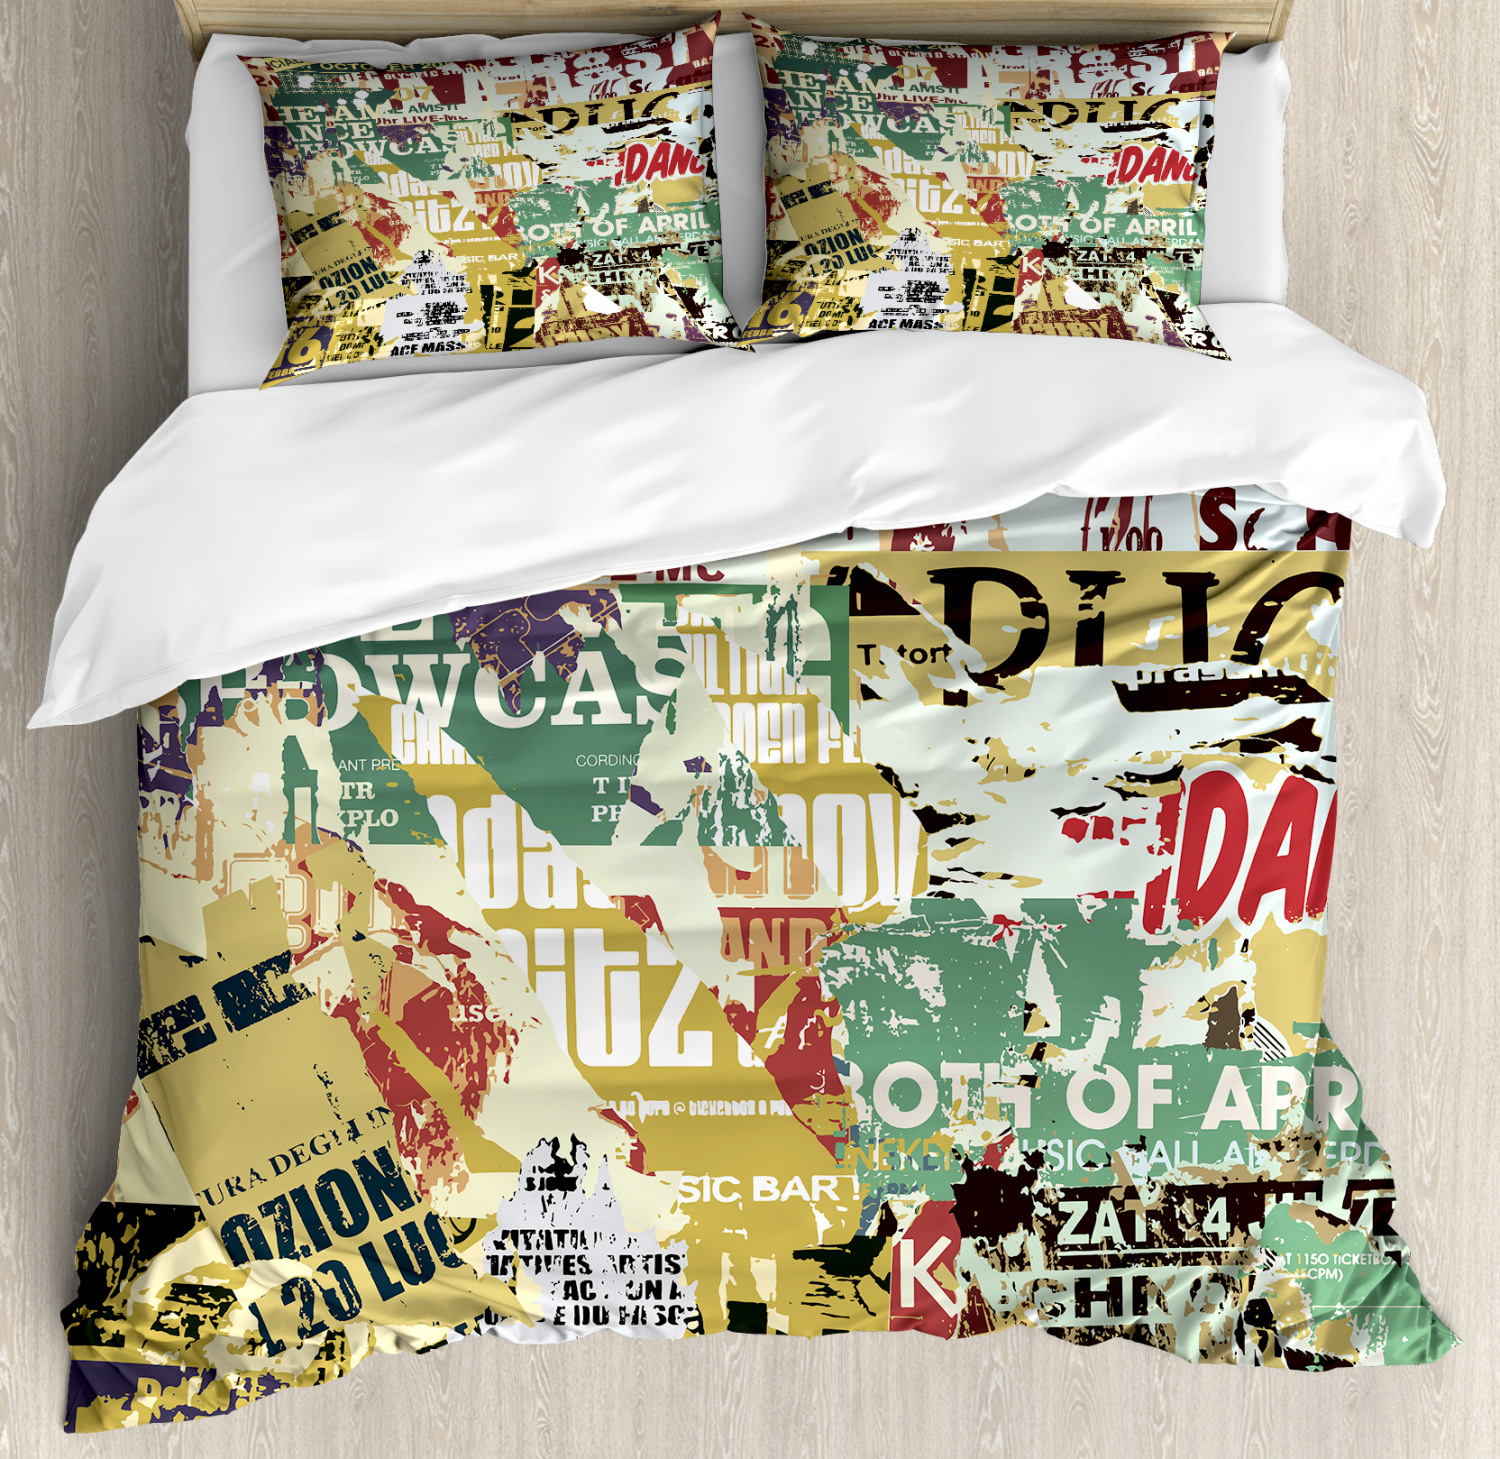 Retro Duvet Cover Set with Pillow Shams Old Torn Posters Collage Print